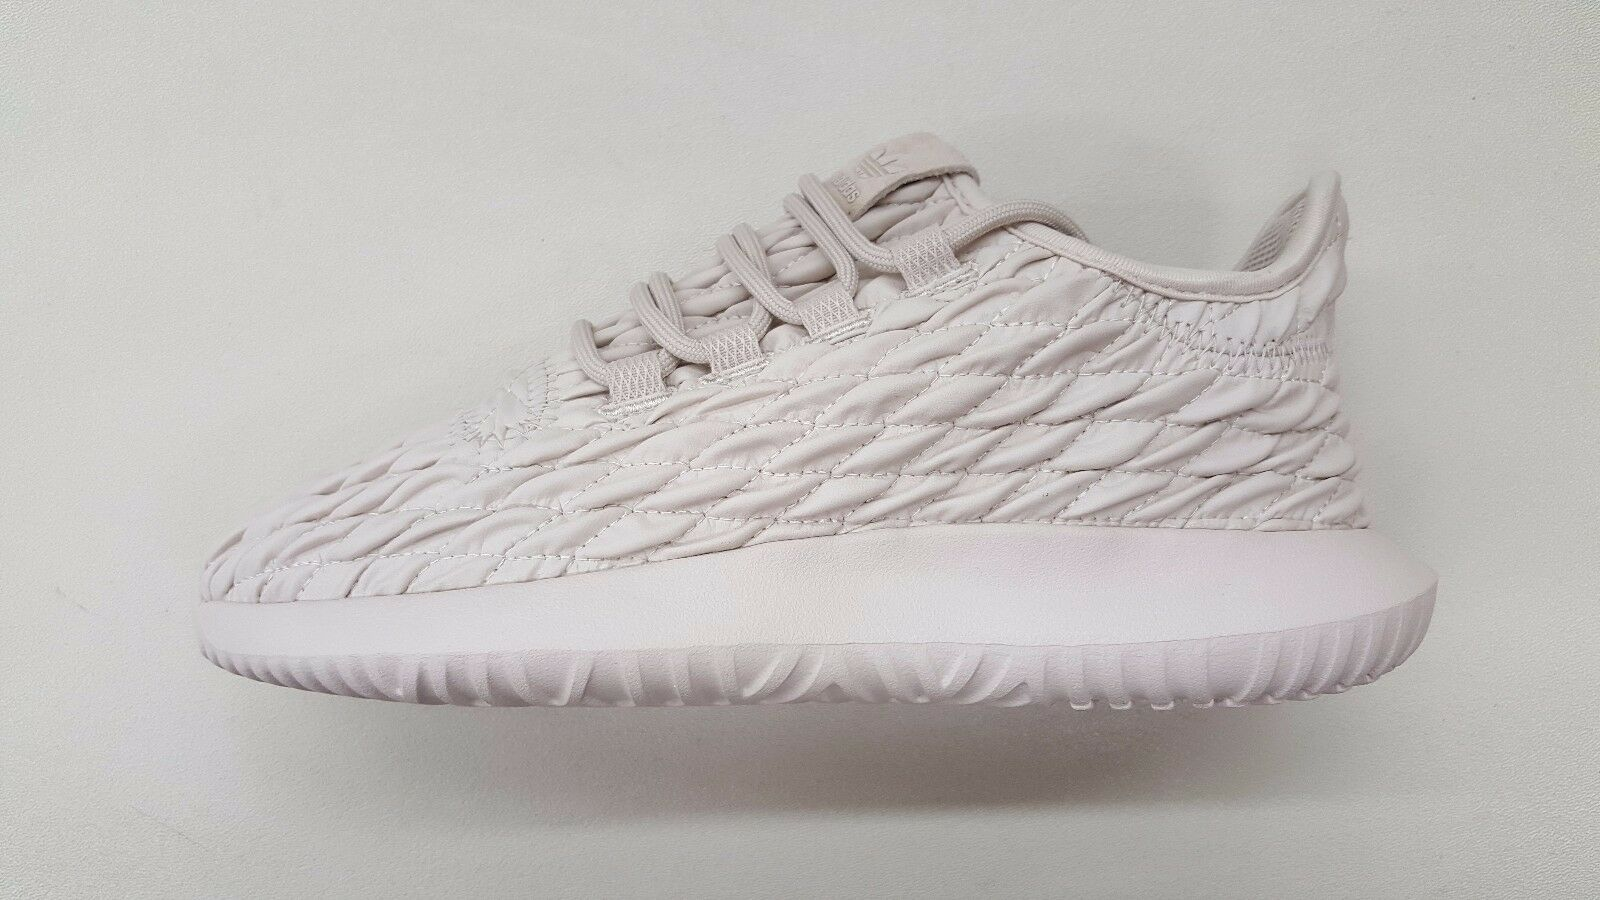 ADIDAS ORIGINALS TUBULAR SHADOW LEATHER LIGHT SAND MENS SIZE SNEAKERS BB8820